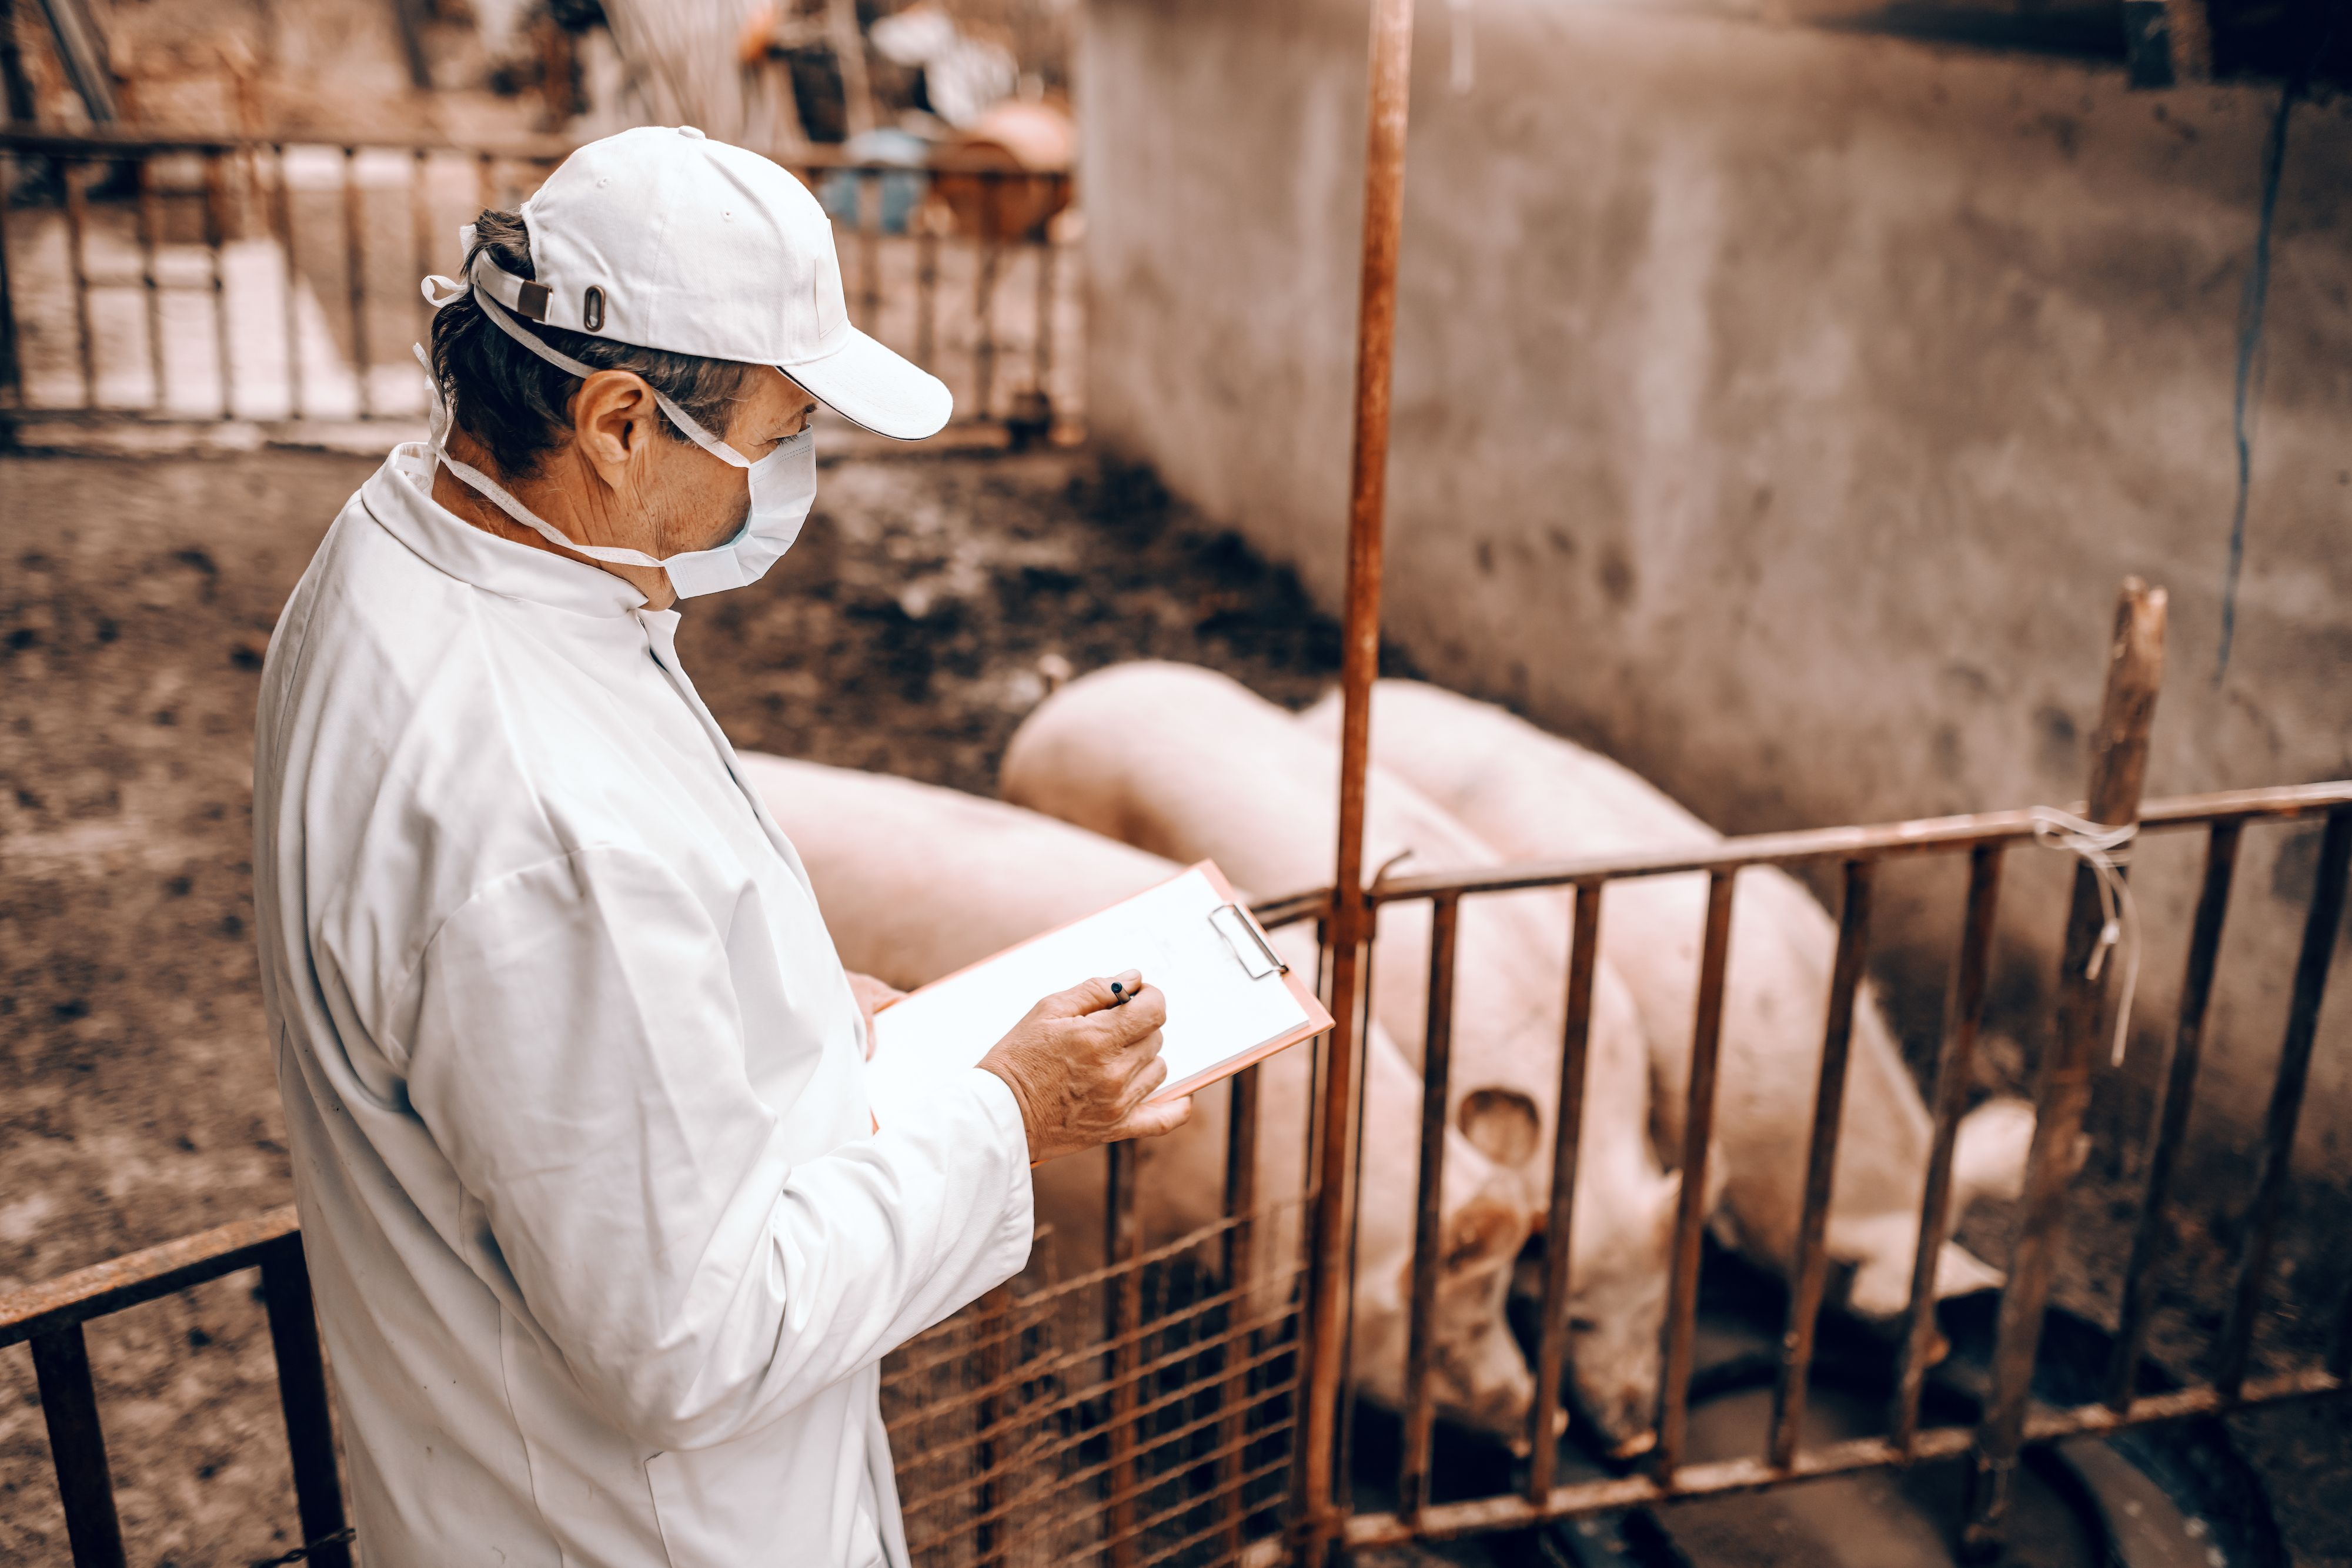 A veterinarian checks on pigs. Image byDusan Petkovic / Shutterstock. Undated.